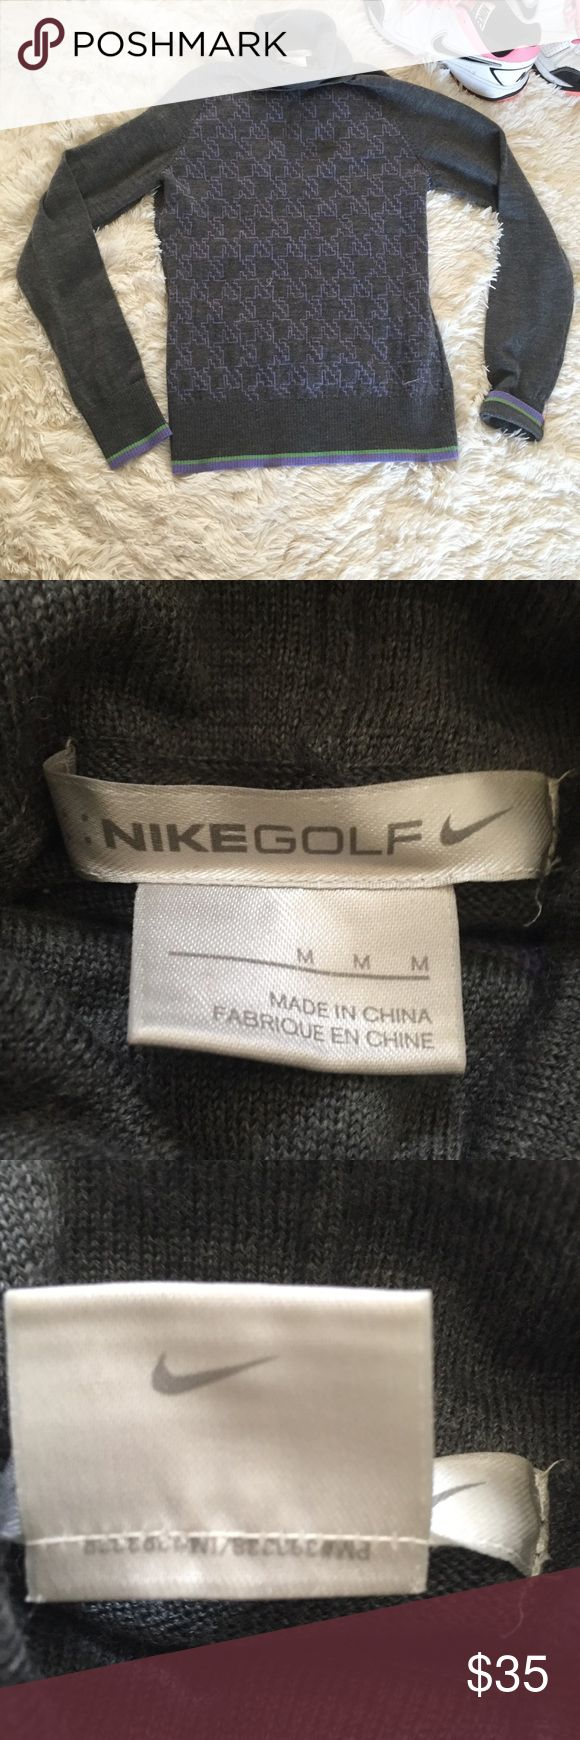 """Nike golf women's turtleneck sweater Medium Nike golf women's size medium turtleneck sweater. Great pre owned condition. Grey with purple geometric pattern. Measurements 17"""" pit to pit (stretchy) 24"""" length. Reasonable offers always accepted. Nike Sweaters Cowl & Turtlenecks"""